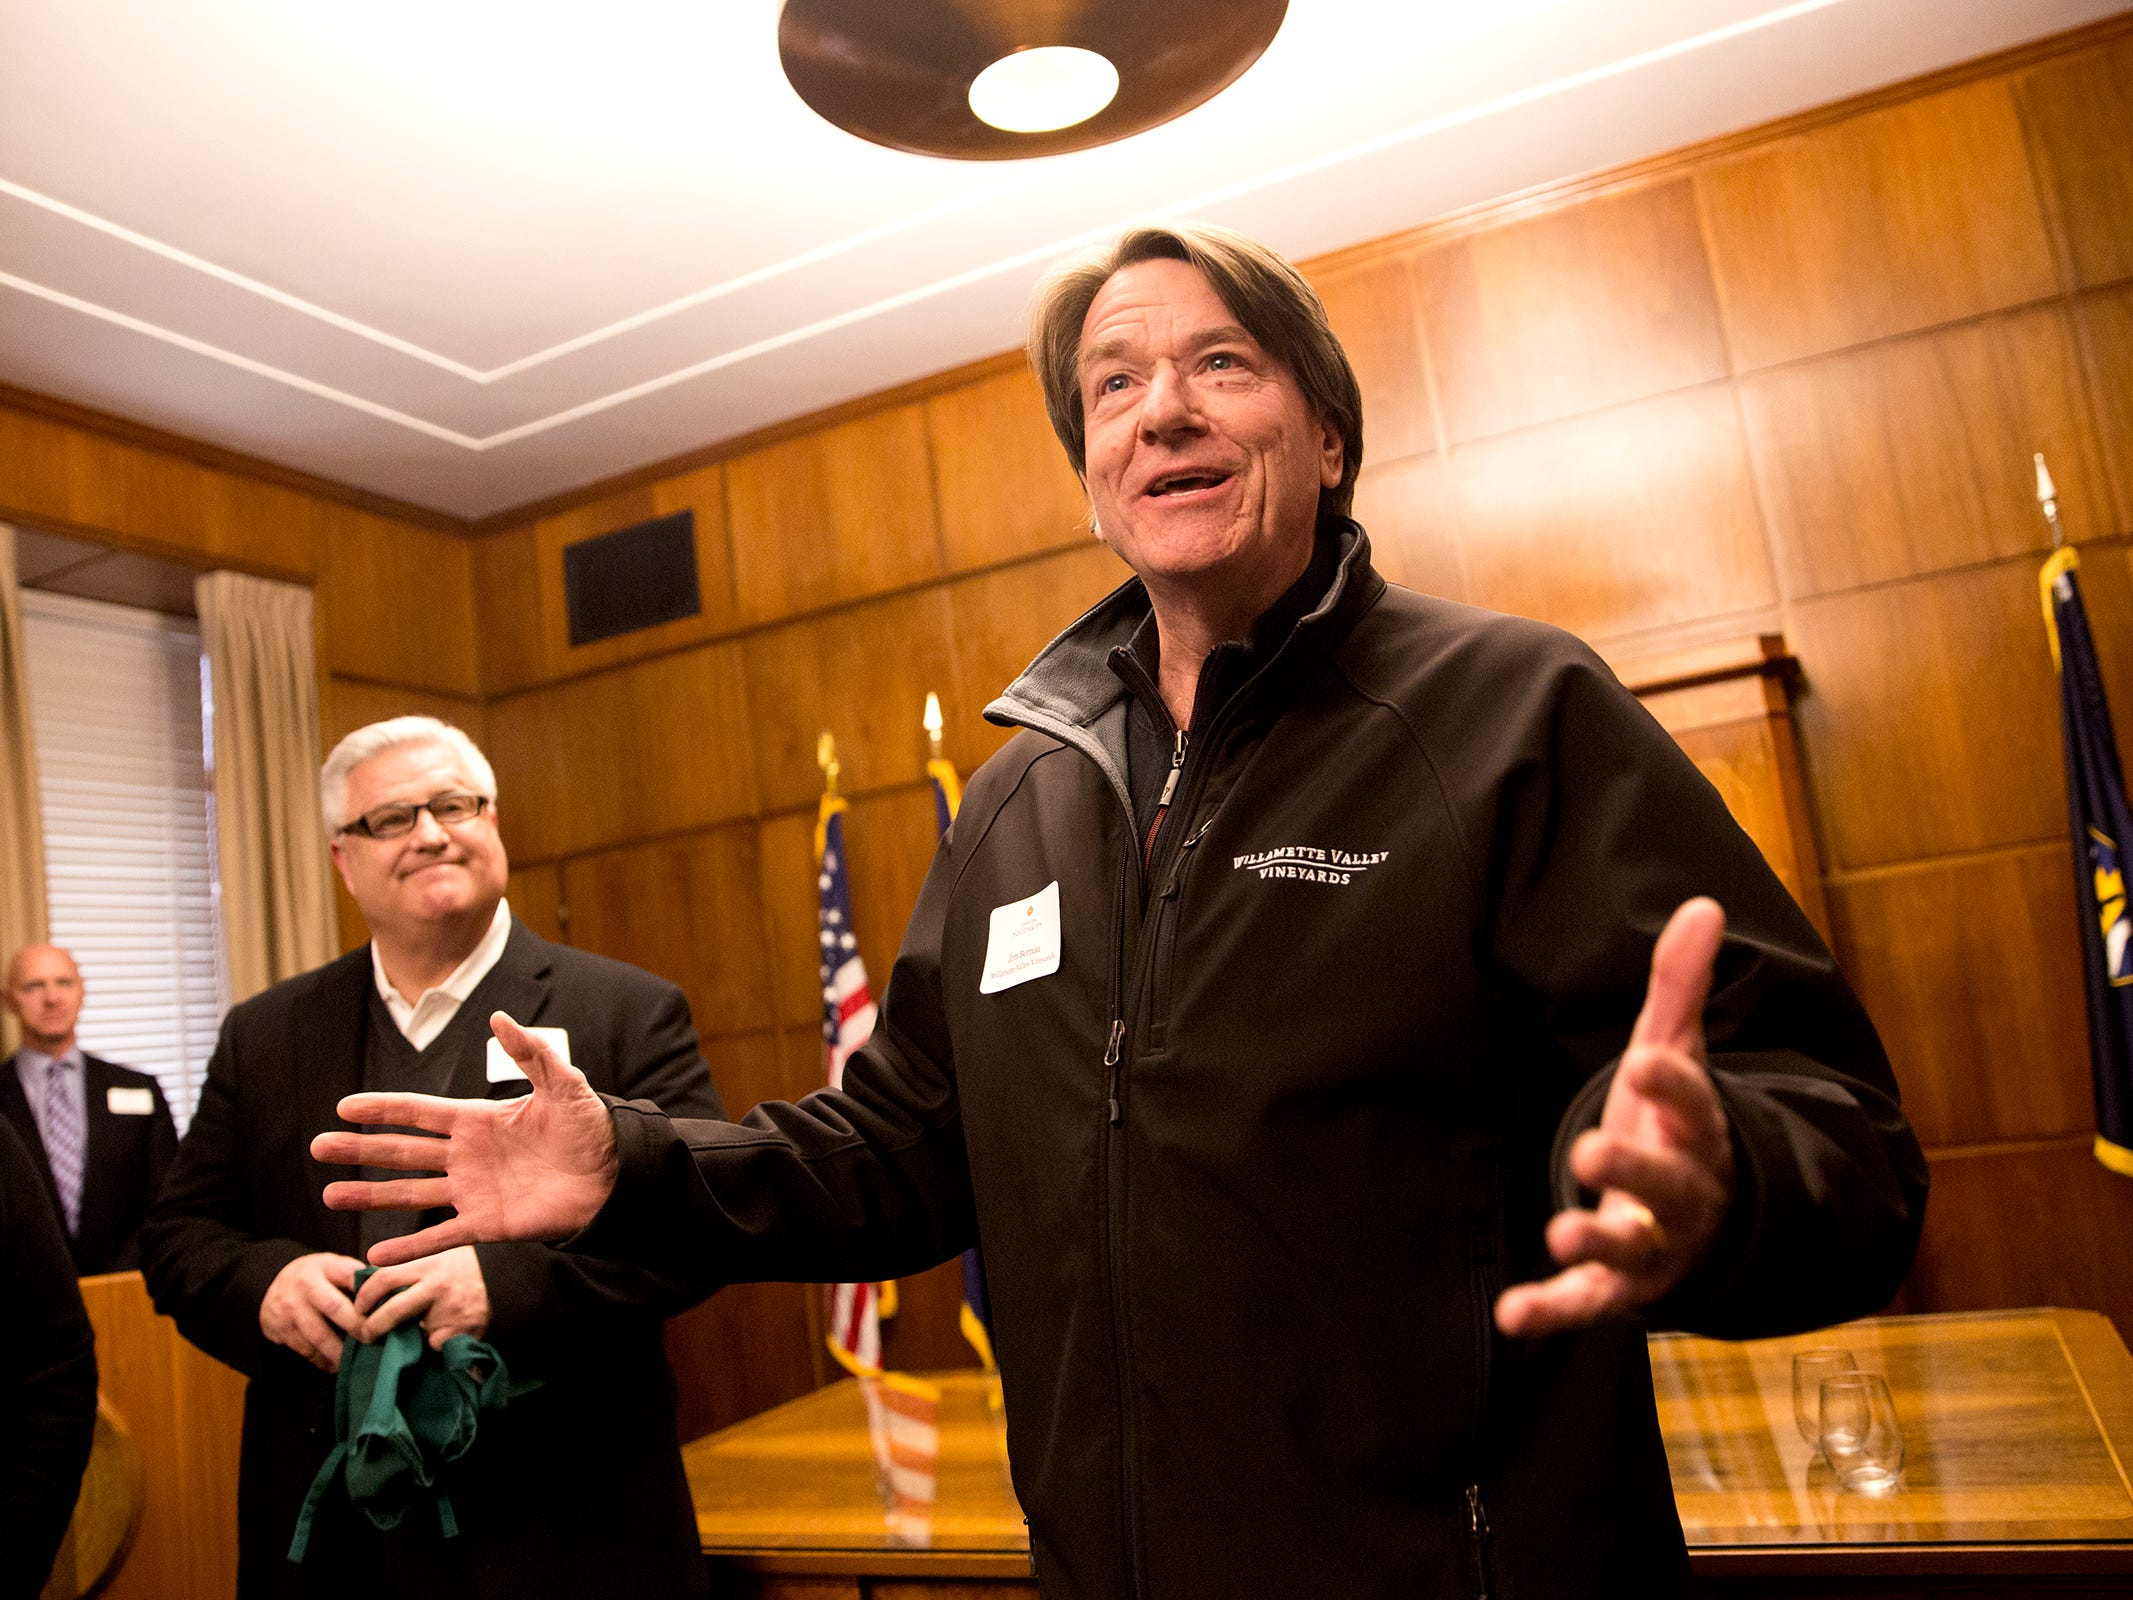 Willamette Valley Vineyard founder and president Jim Bernau speaks at a release party for the Oregon Solidarity Rose of Pinot Noir as Tim Jennings, of Roth's Fresh Markets looks on in Gov. Kate Brown's ceremonial office at the Oregon State Capitol in Salem on Tuesday, March 5, 2019.